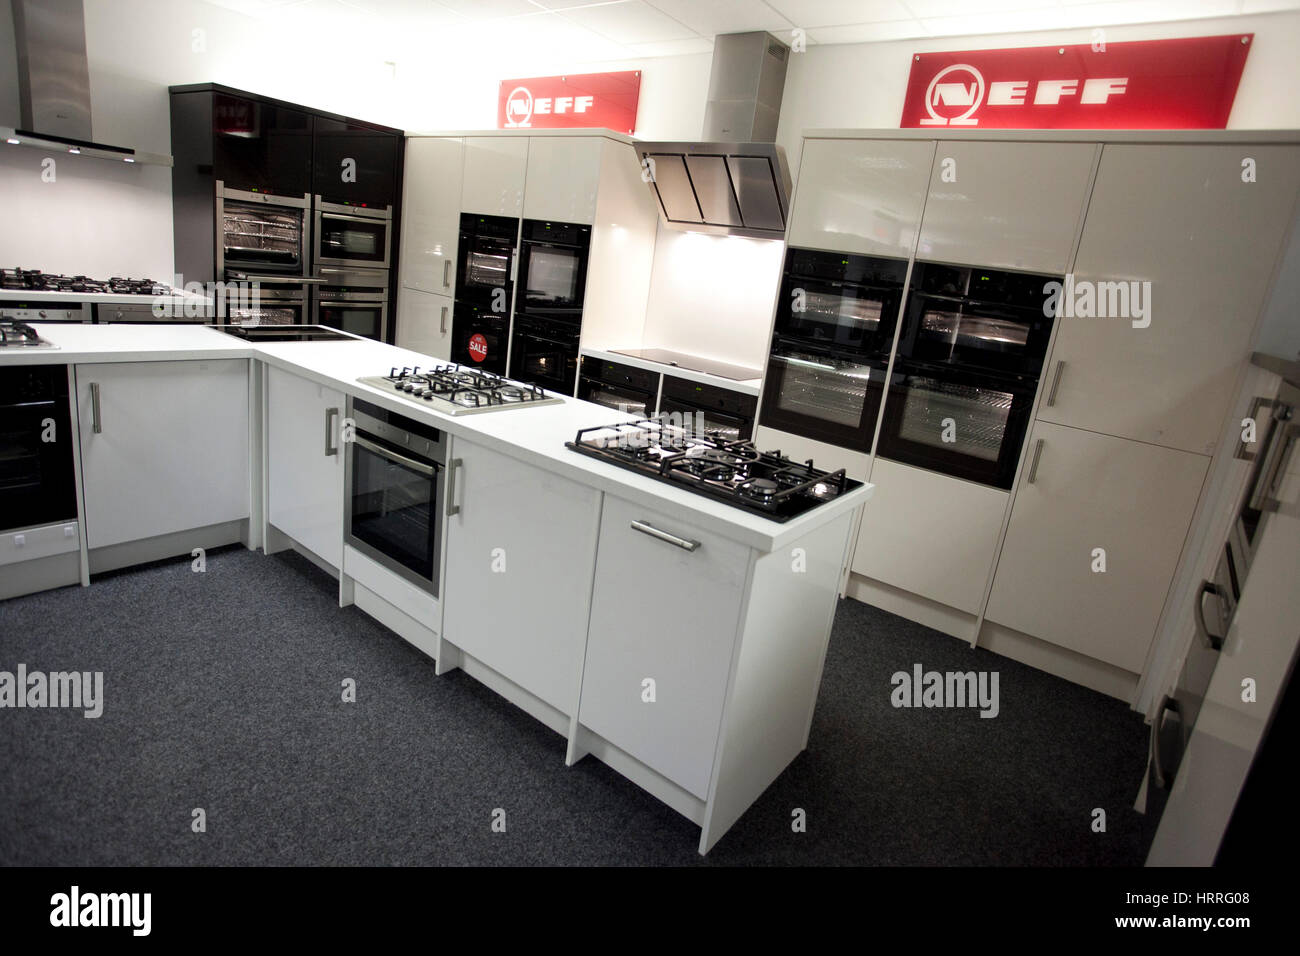 Neff Domestic Appliances In A Showroom   Stock Image